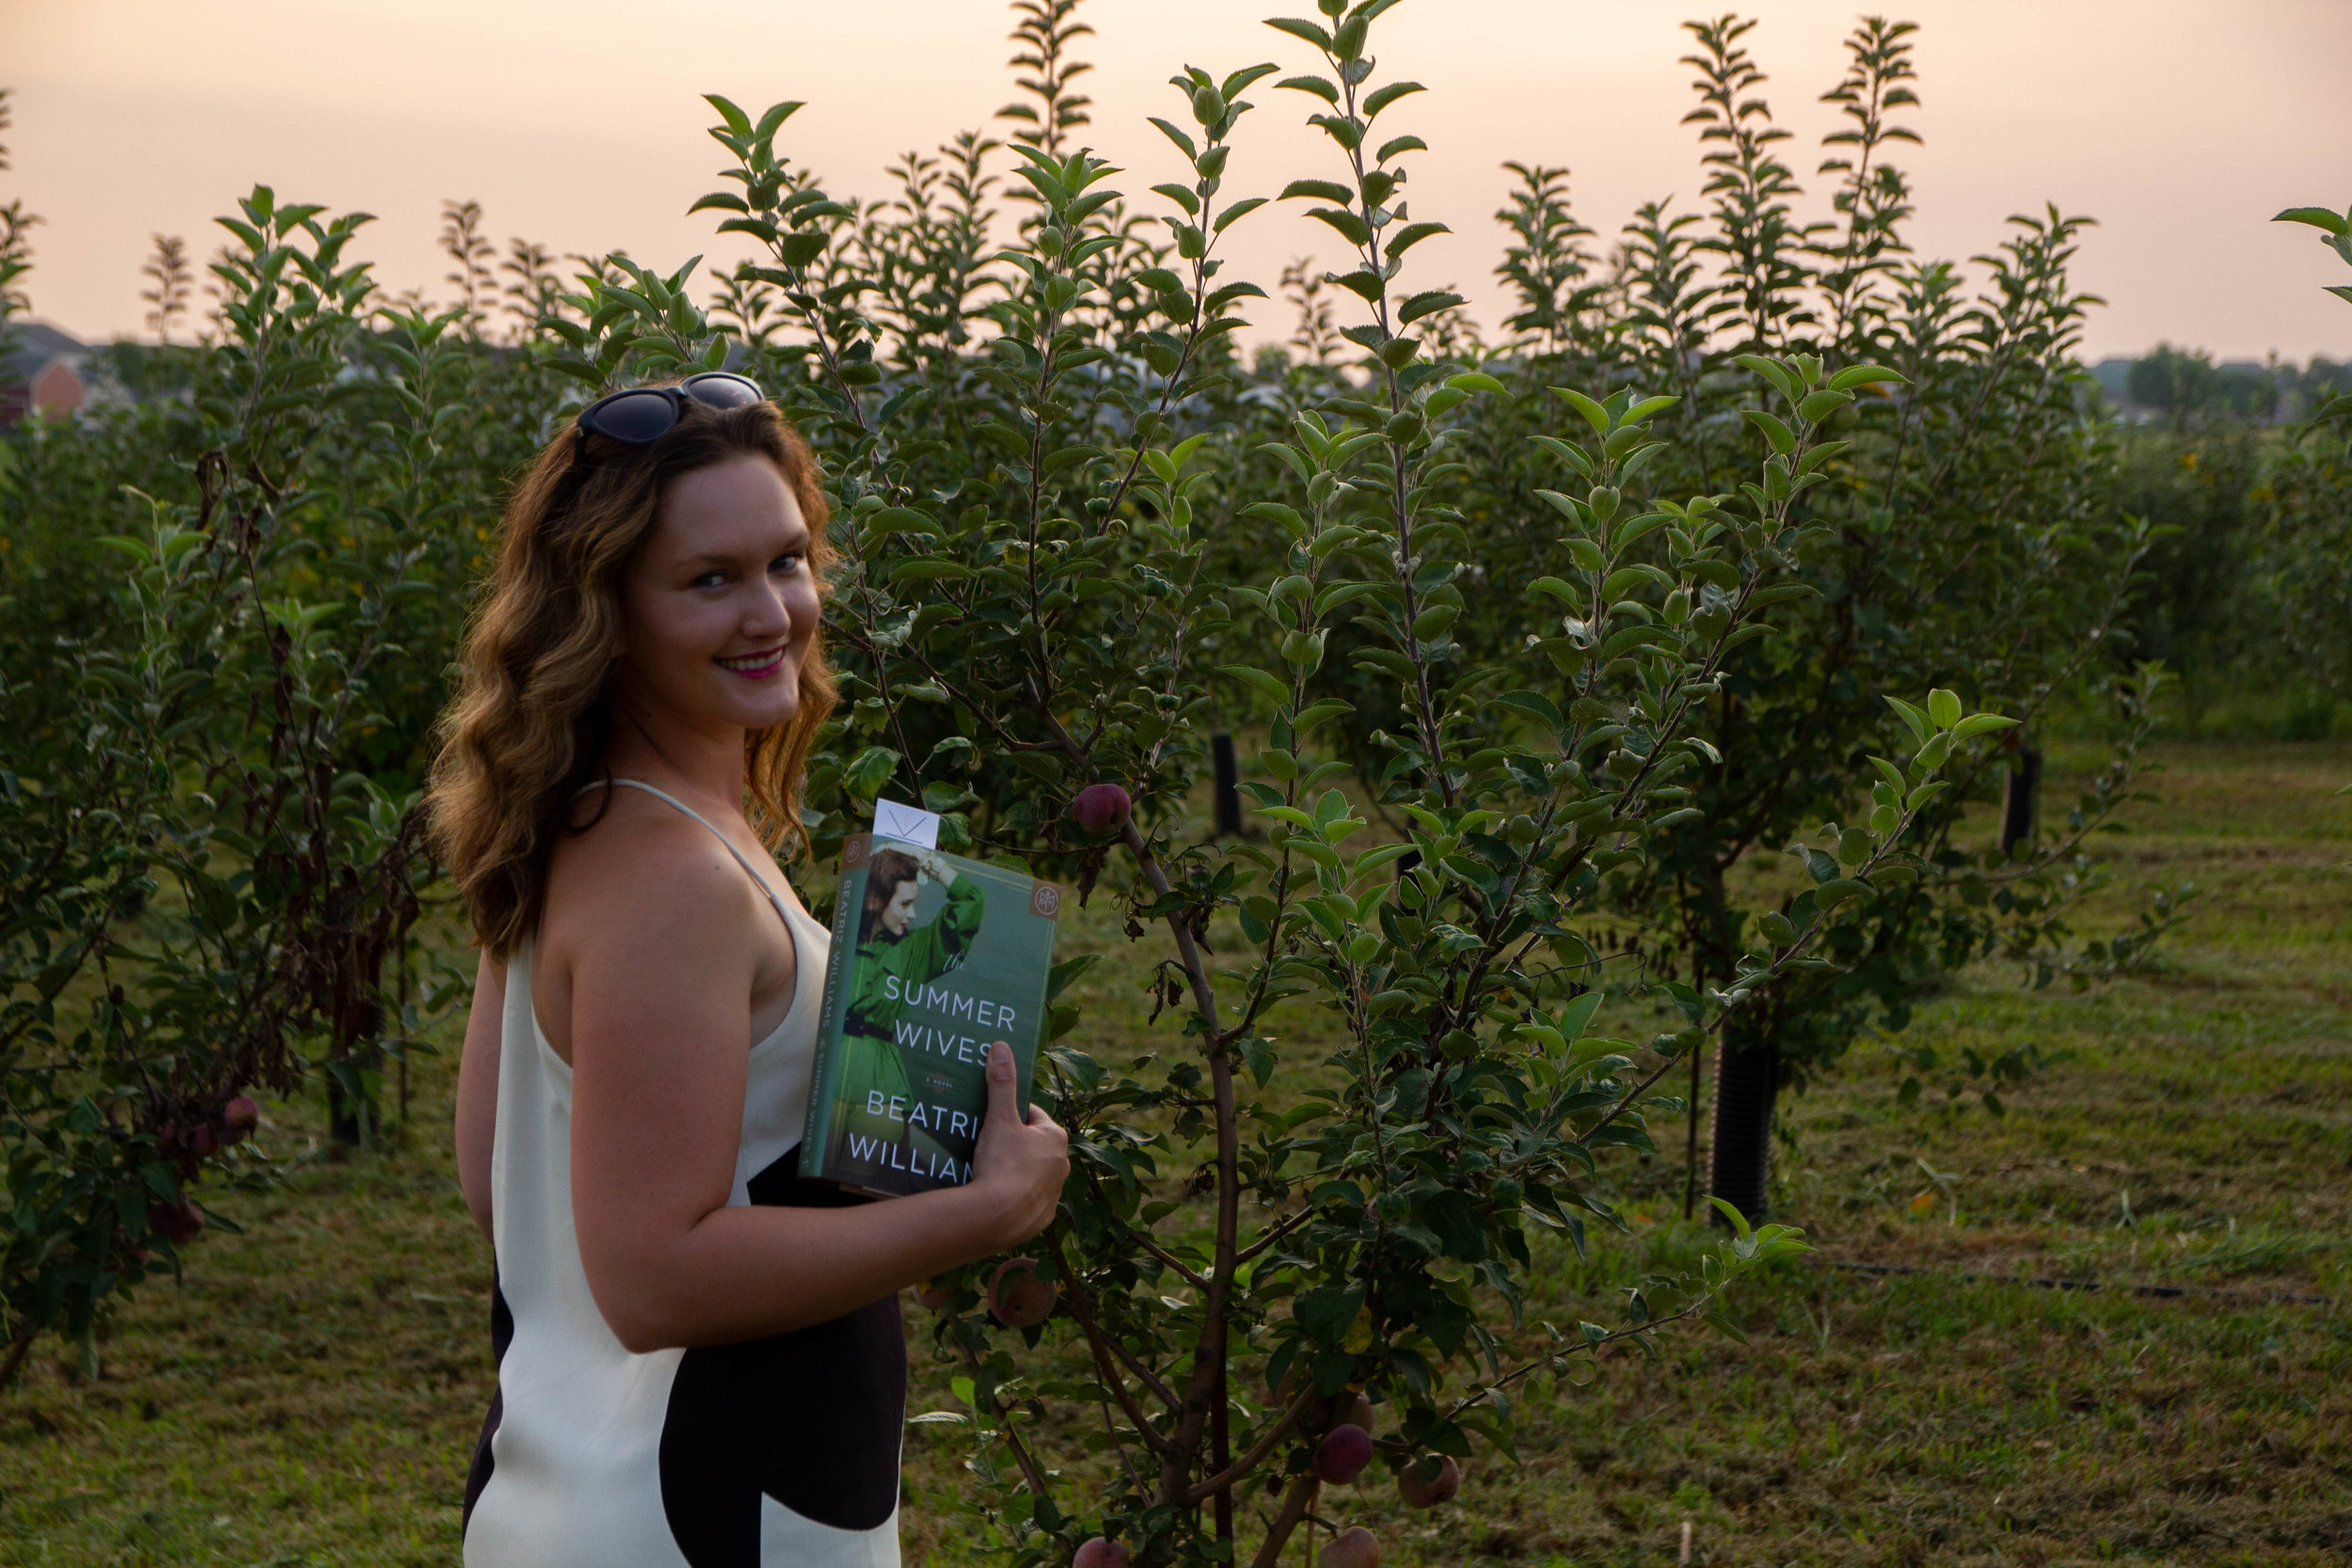 Reading The Summer Wives by Beatriz Williams at GlenMark Farms